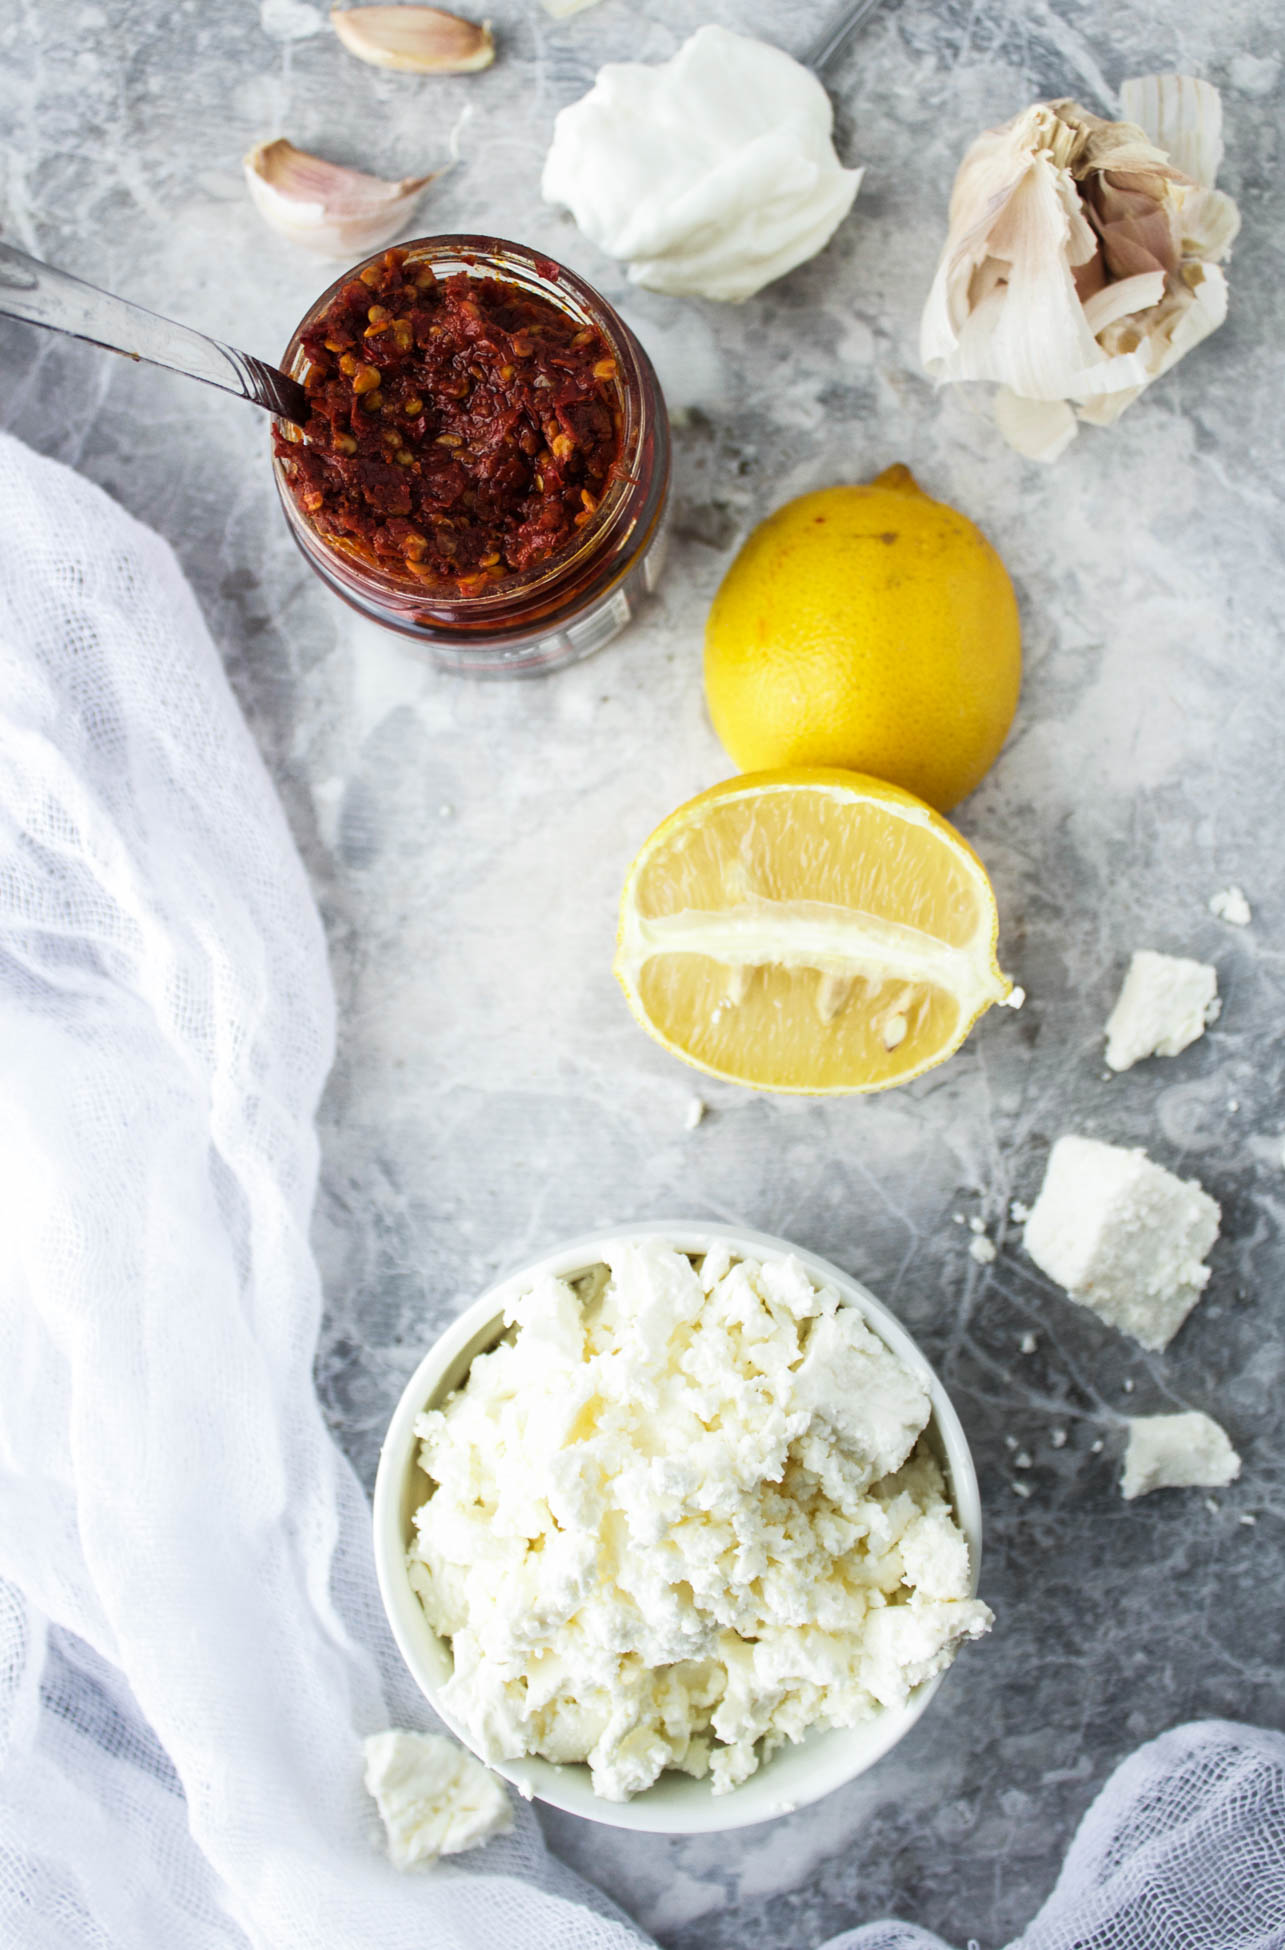 Harissa-Spiked Whipped Feta Dip